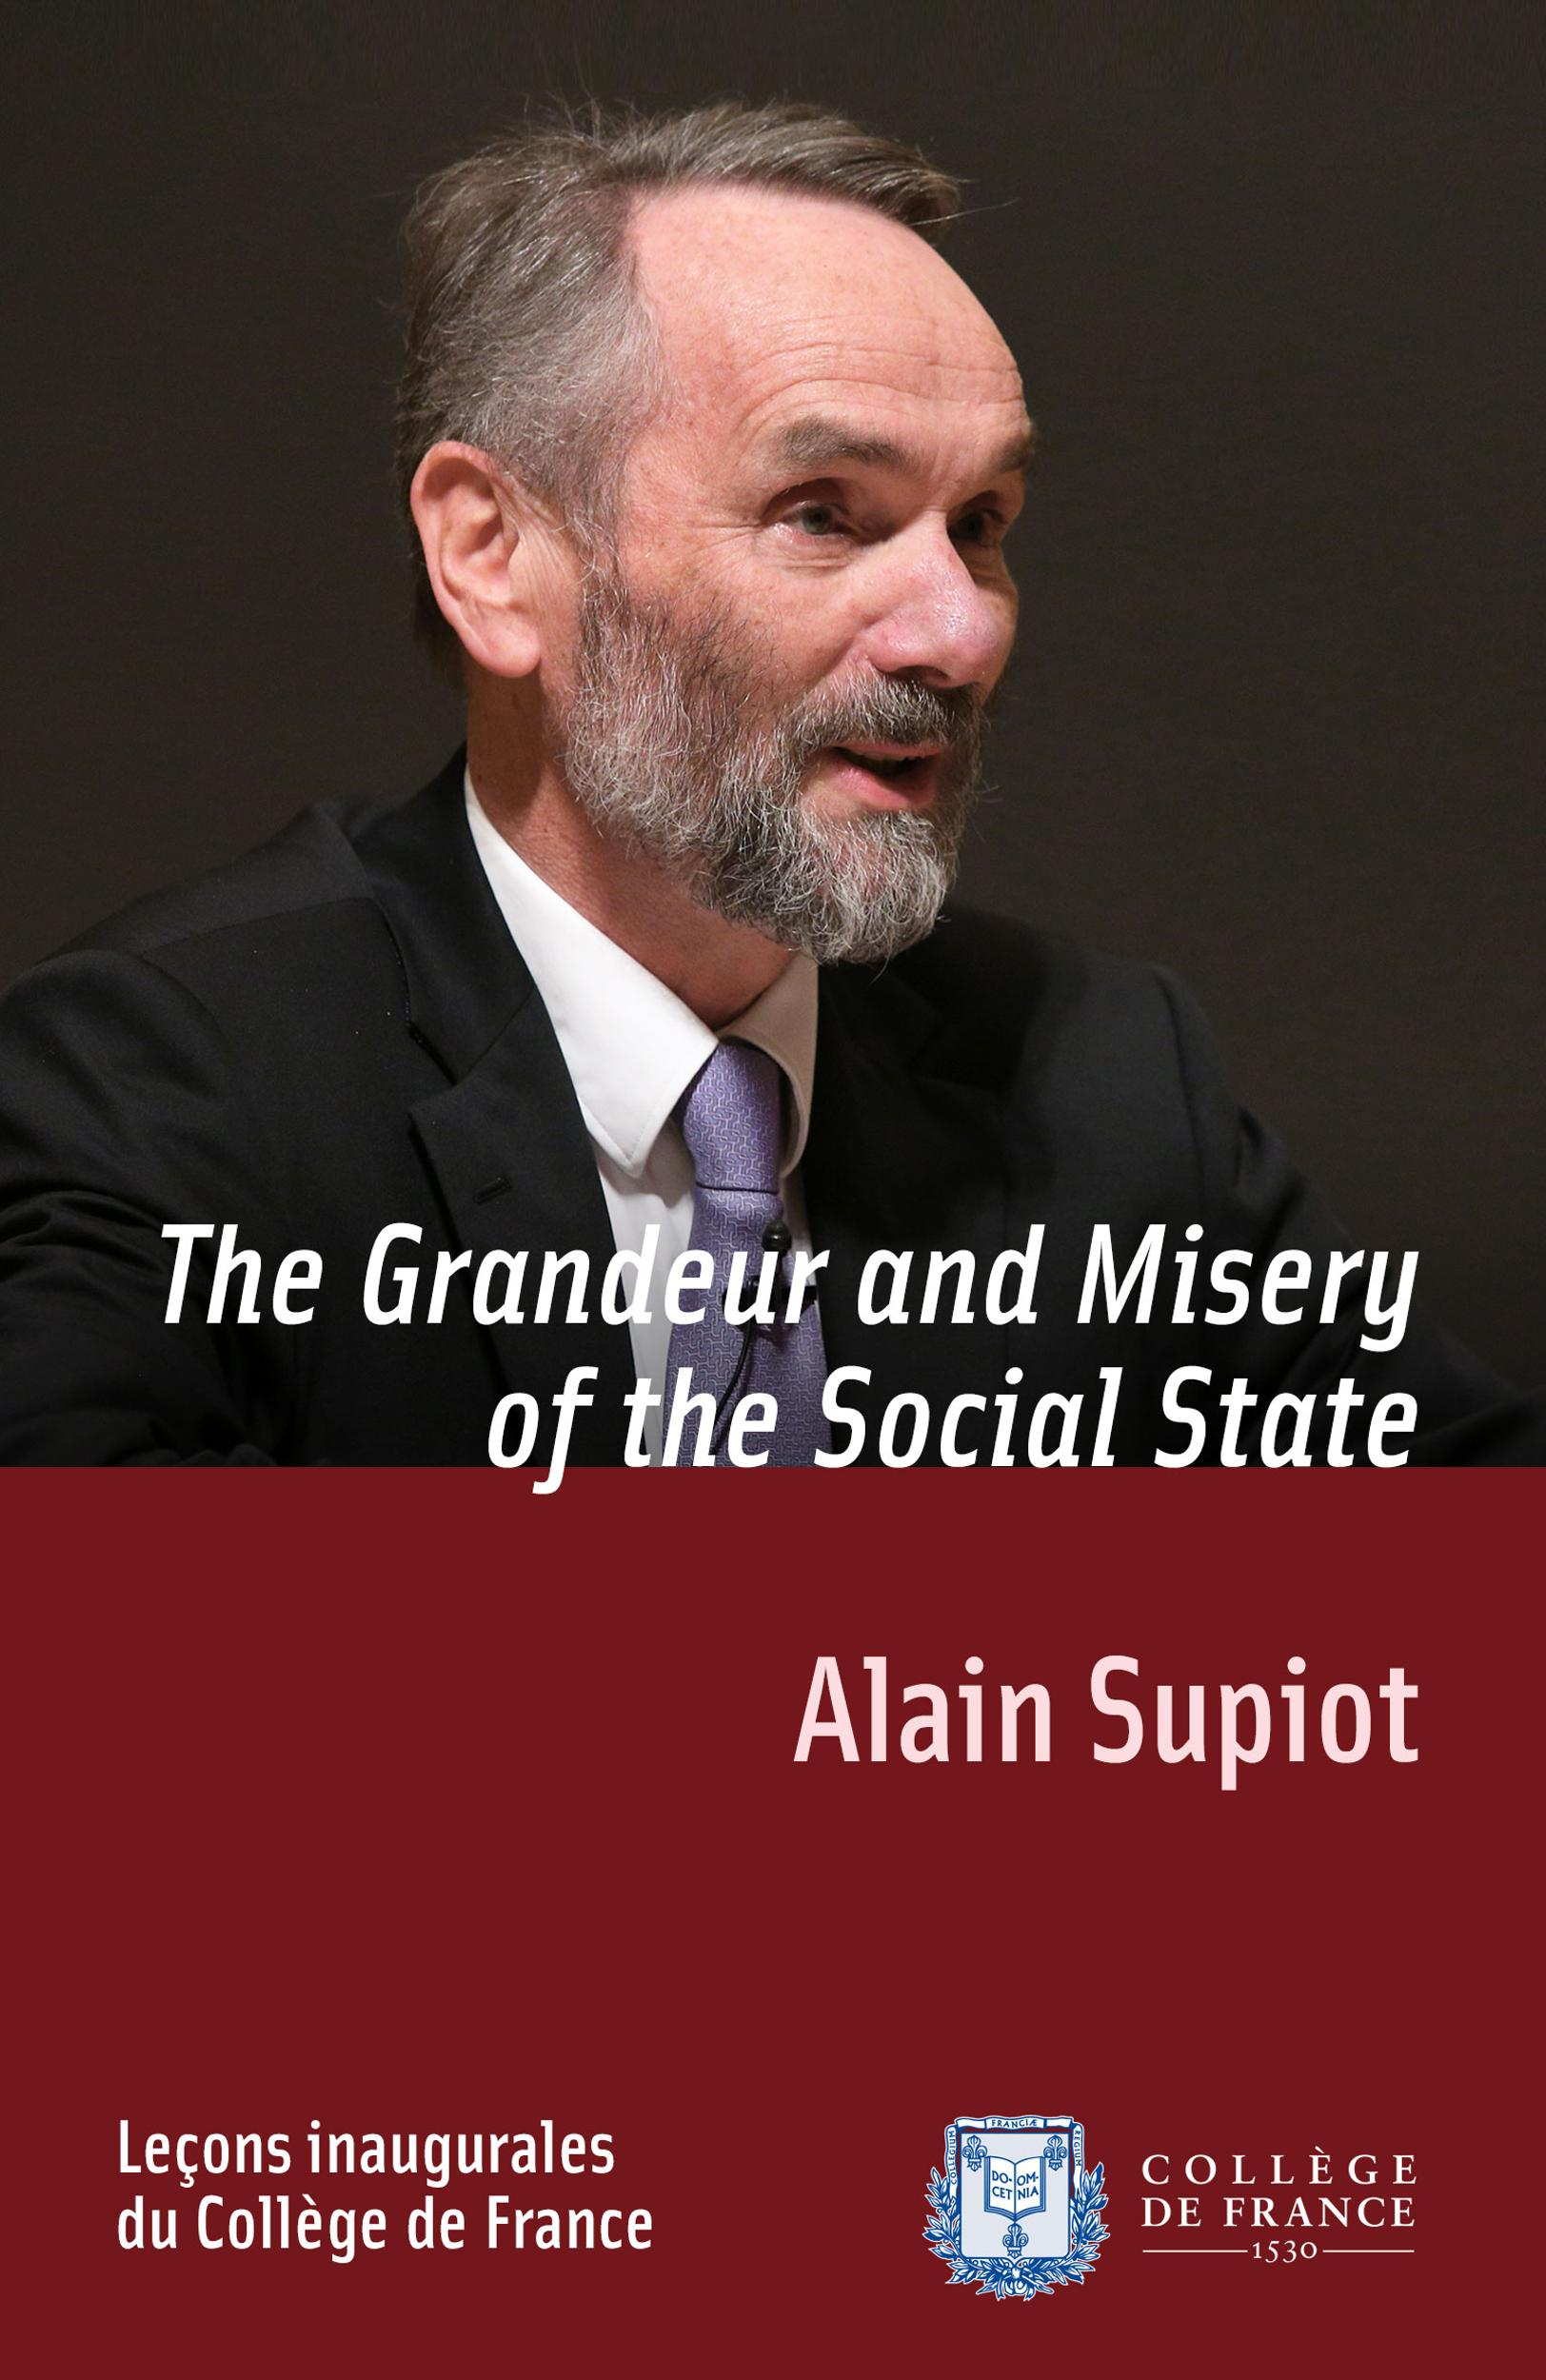 The Grandeur and Misery of the Social State, INAUGURAL LECTURE DELIVERED ON THURSDAY 29NOVEMBER2012